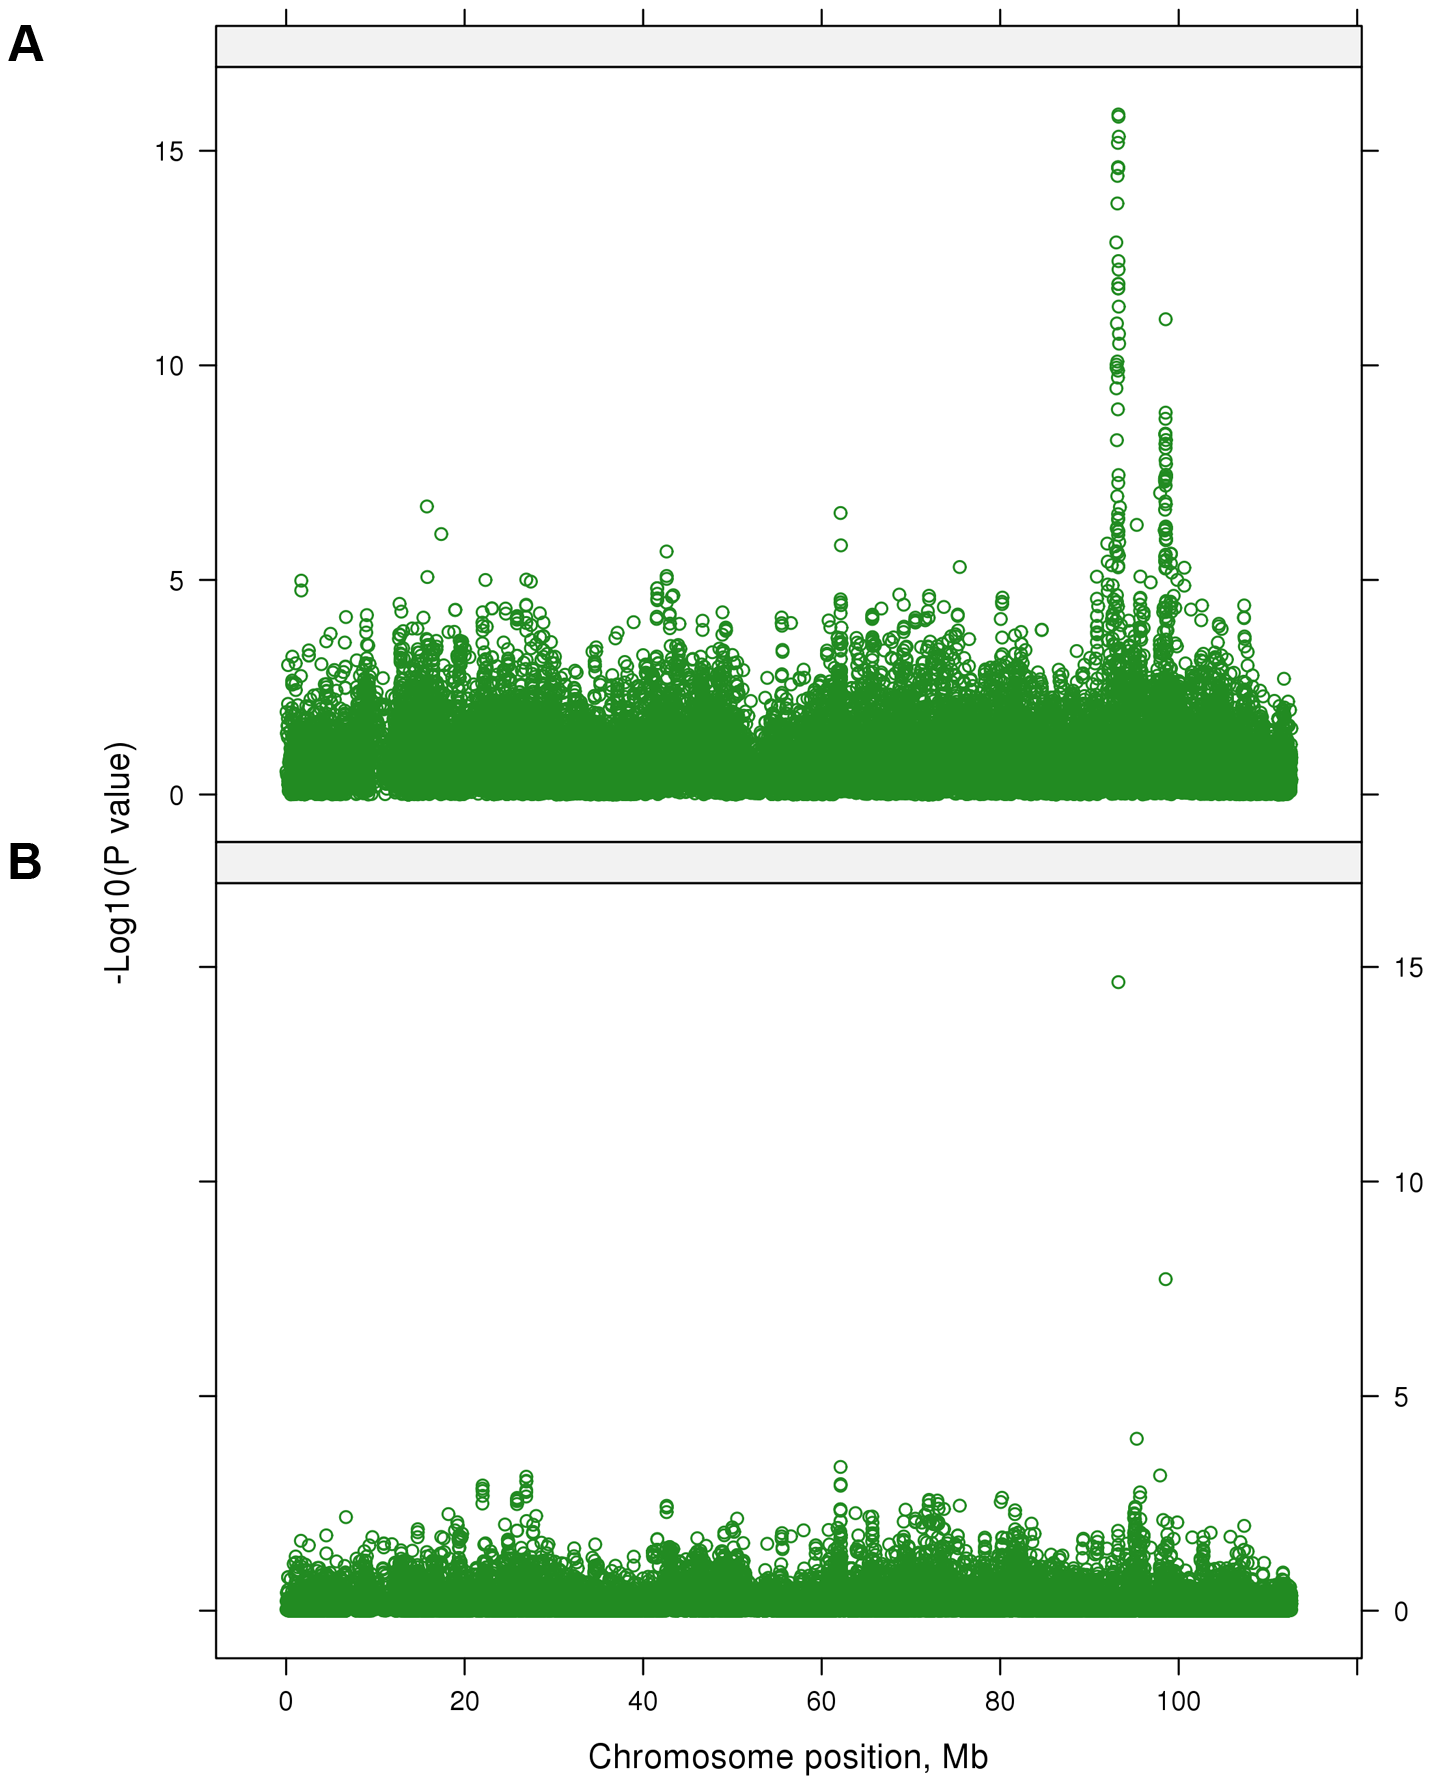 The −log<sub>10</sub>(<i>P</i>-values) of the multi-trait test calculated using SNP effects from the single-trait GWAS for 32 traits on BTA 7 before (A) and after (B) fitting 28 lead SNPs in the model.